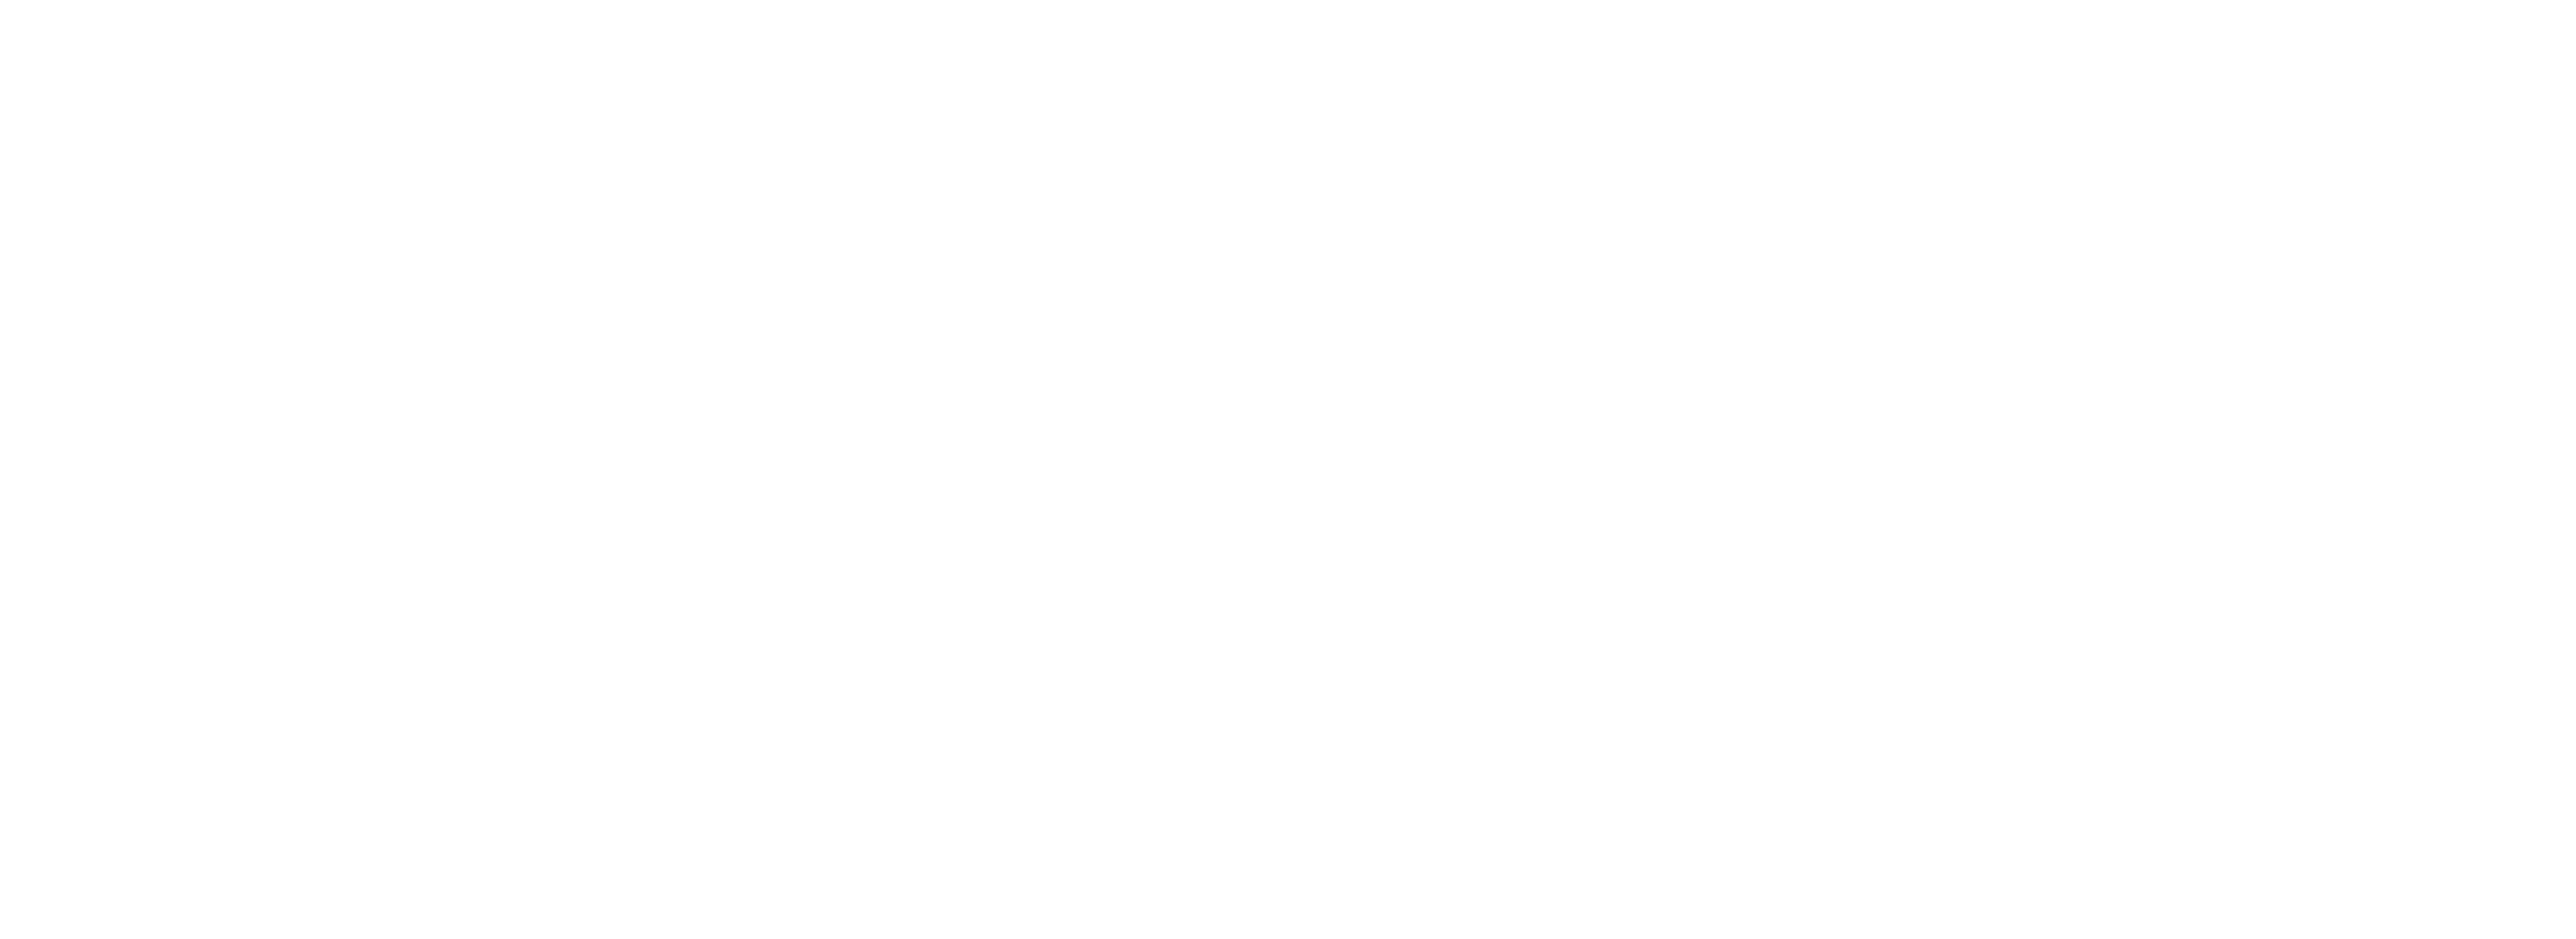 Oswchannel5.com Coupons & Promo codes